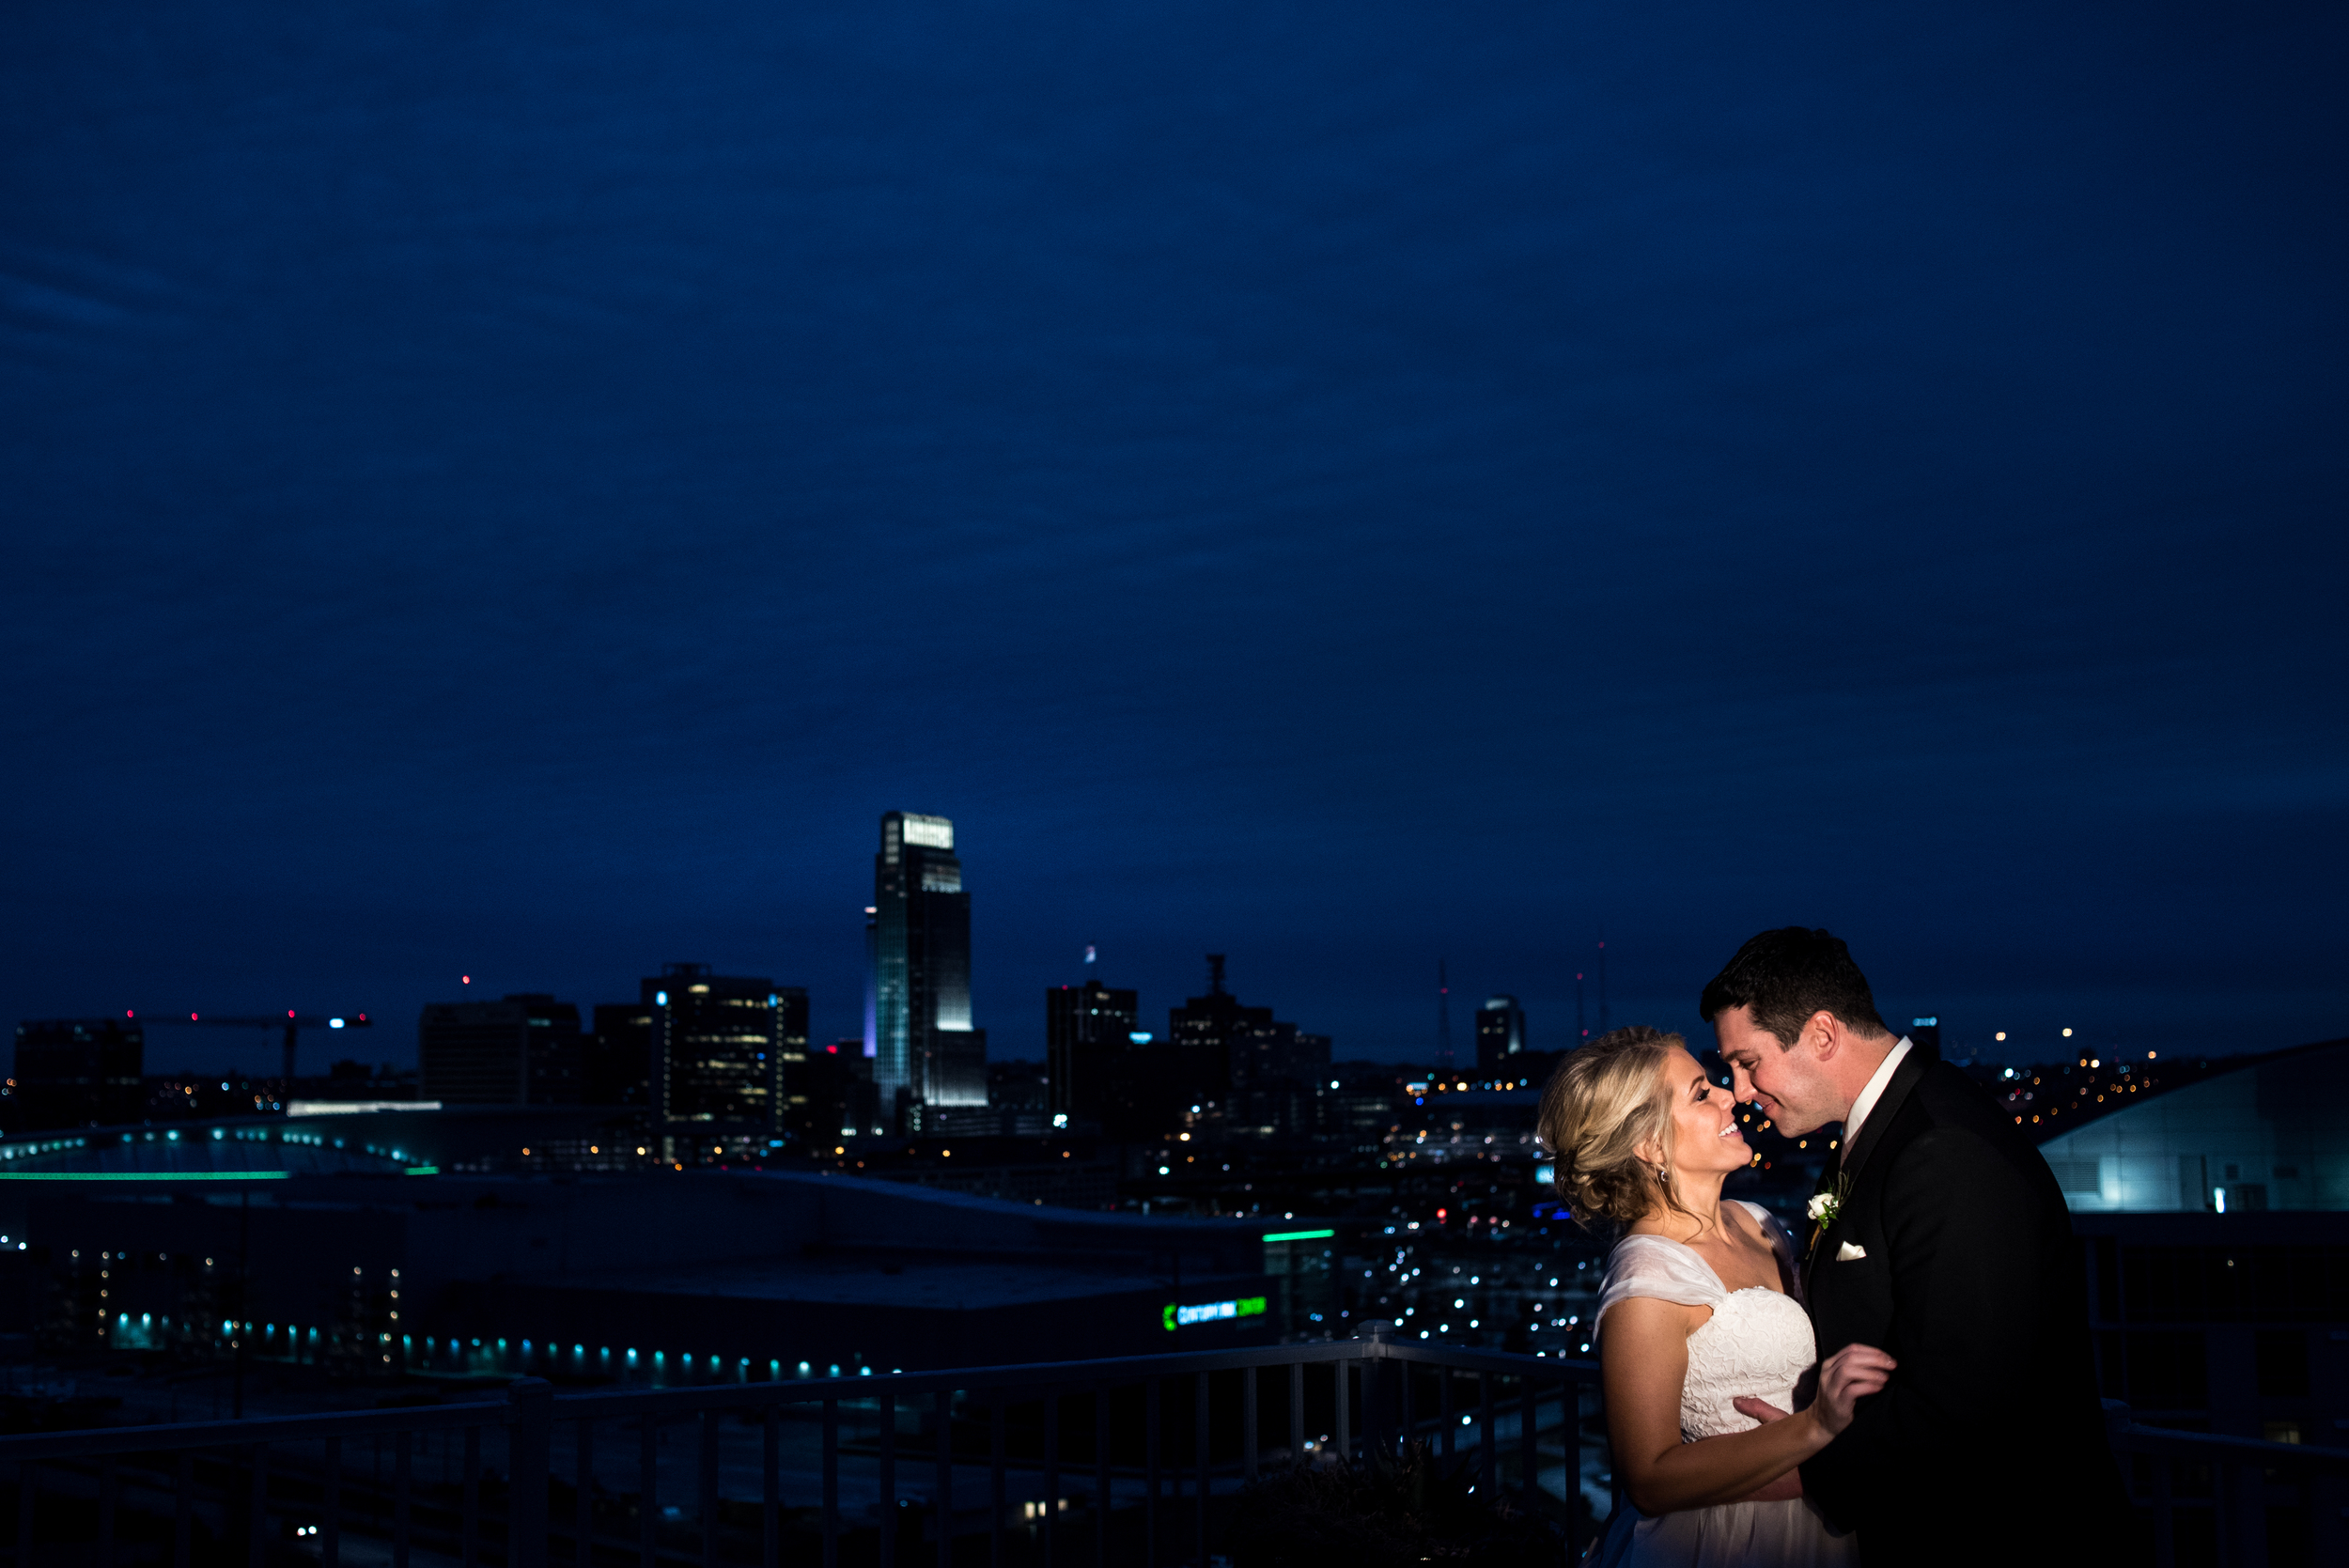 Sara and Tom making winter nosies on a top secret rooftop overlooking Omaha's skyline.